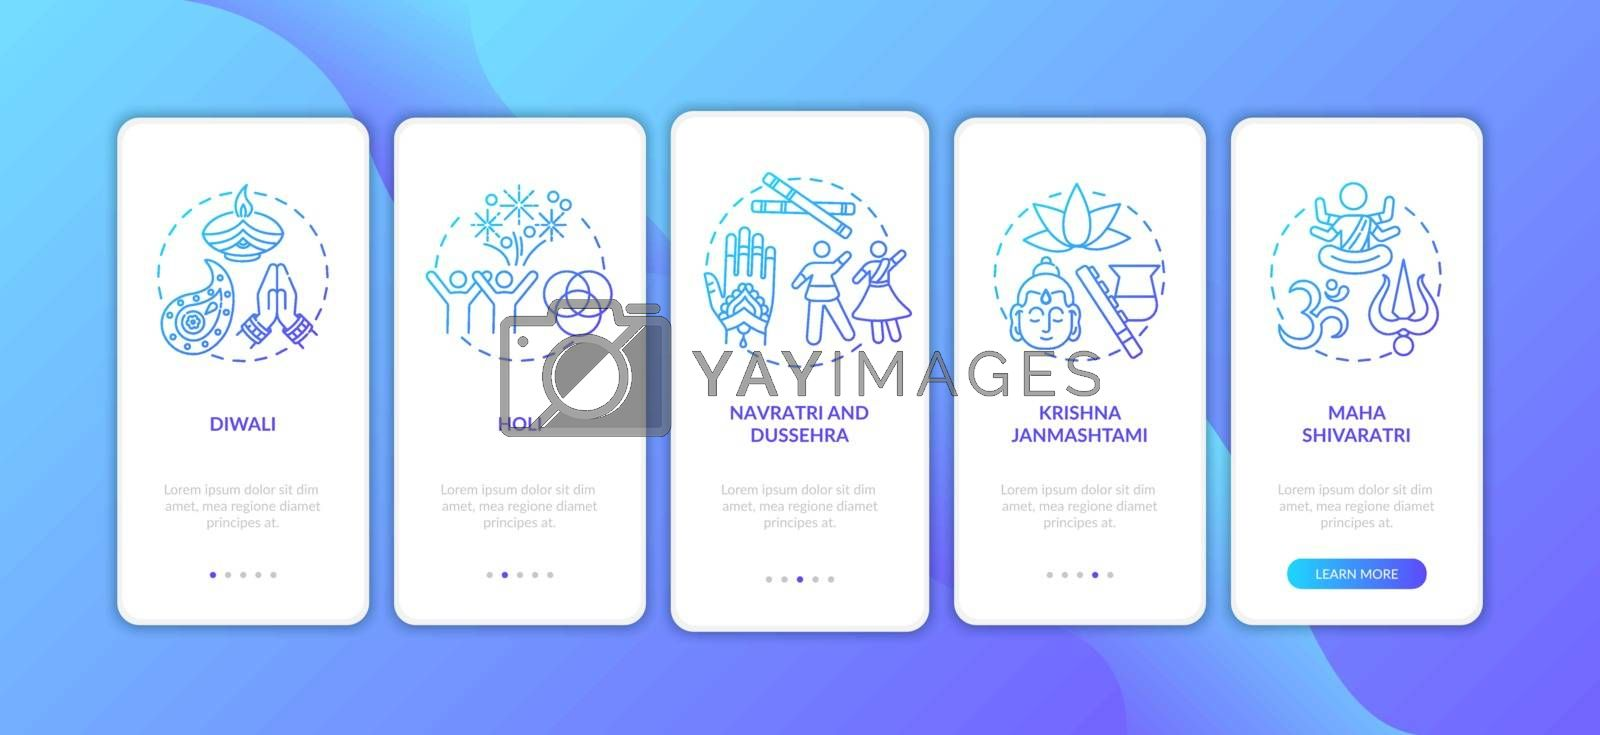 Top Hindu festivals onboarding mobile app page screen with concepts. Maha Shivaratri. Dussehra. Walkthrough 5 steps graphic instructions. UI vector template with RGB color illustrations